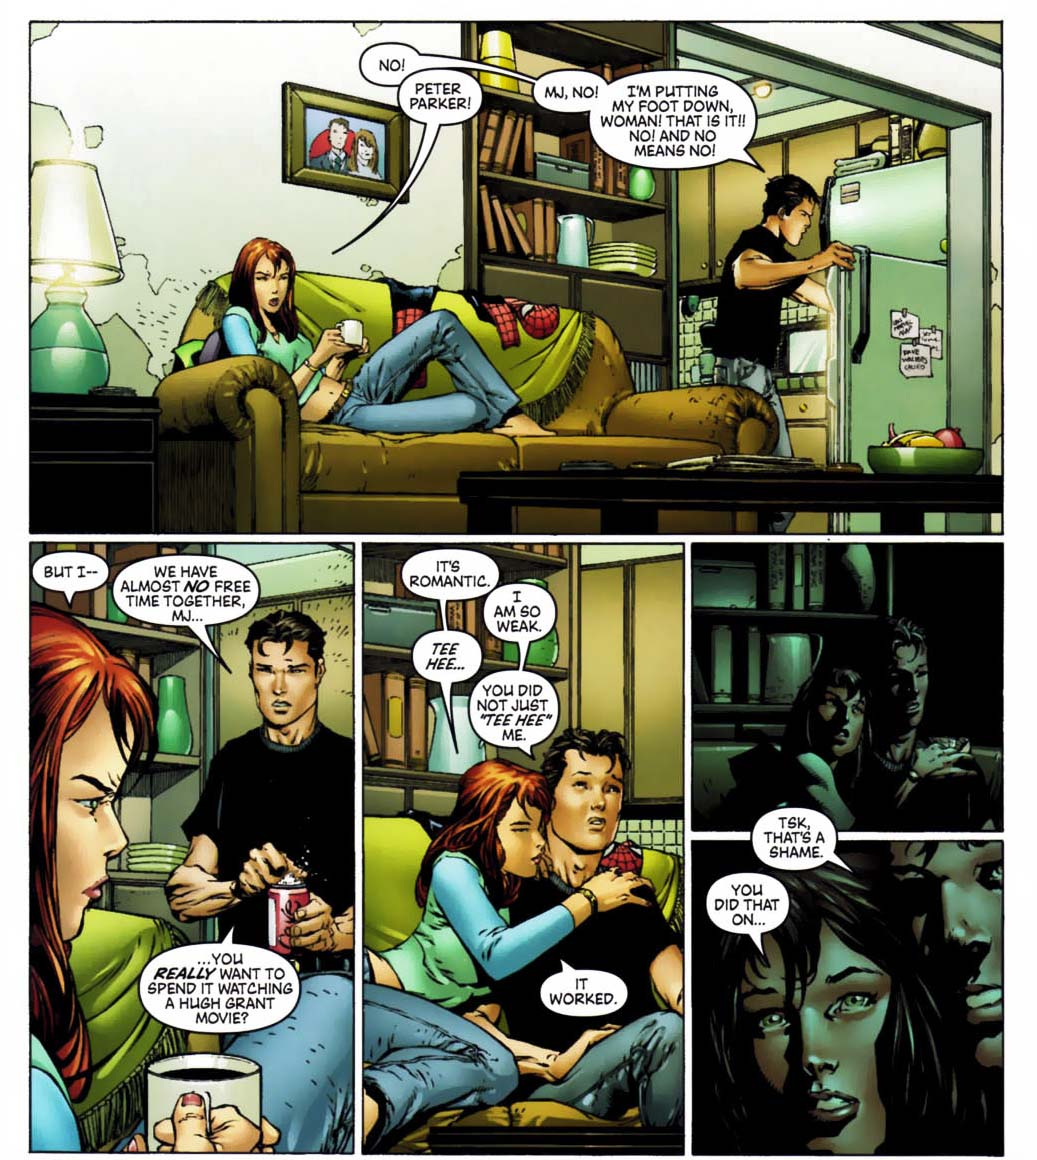 spider-man doesn't like hugh grant movies